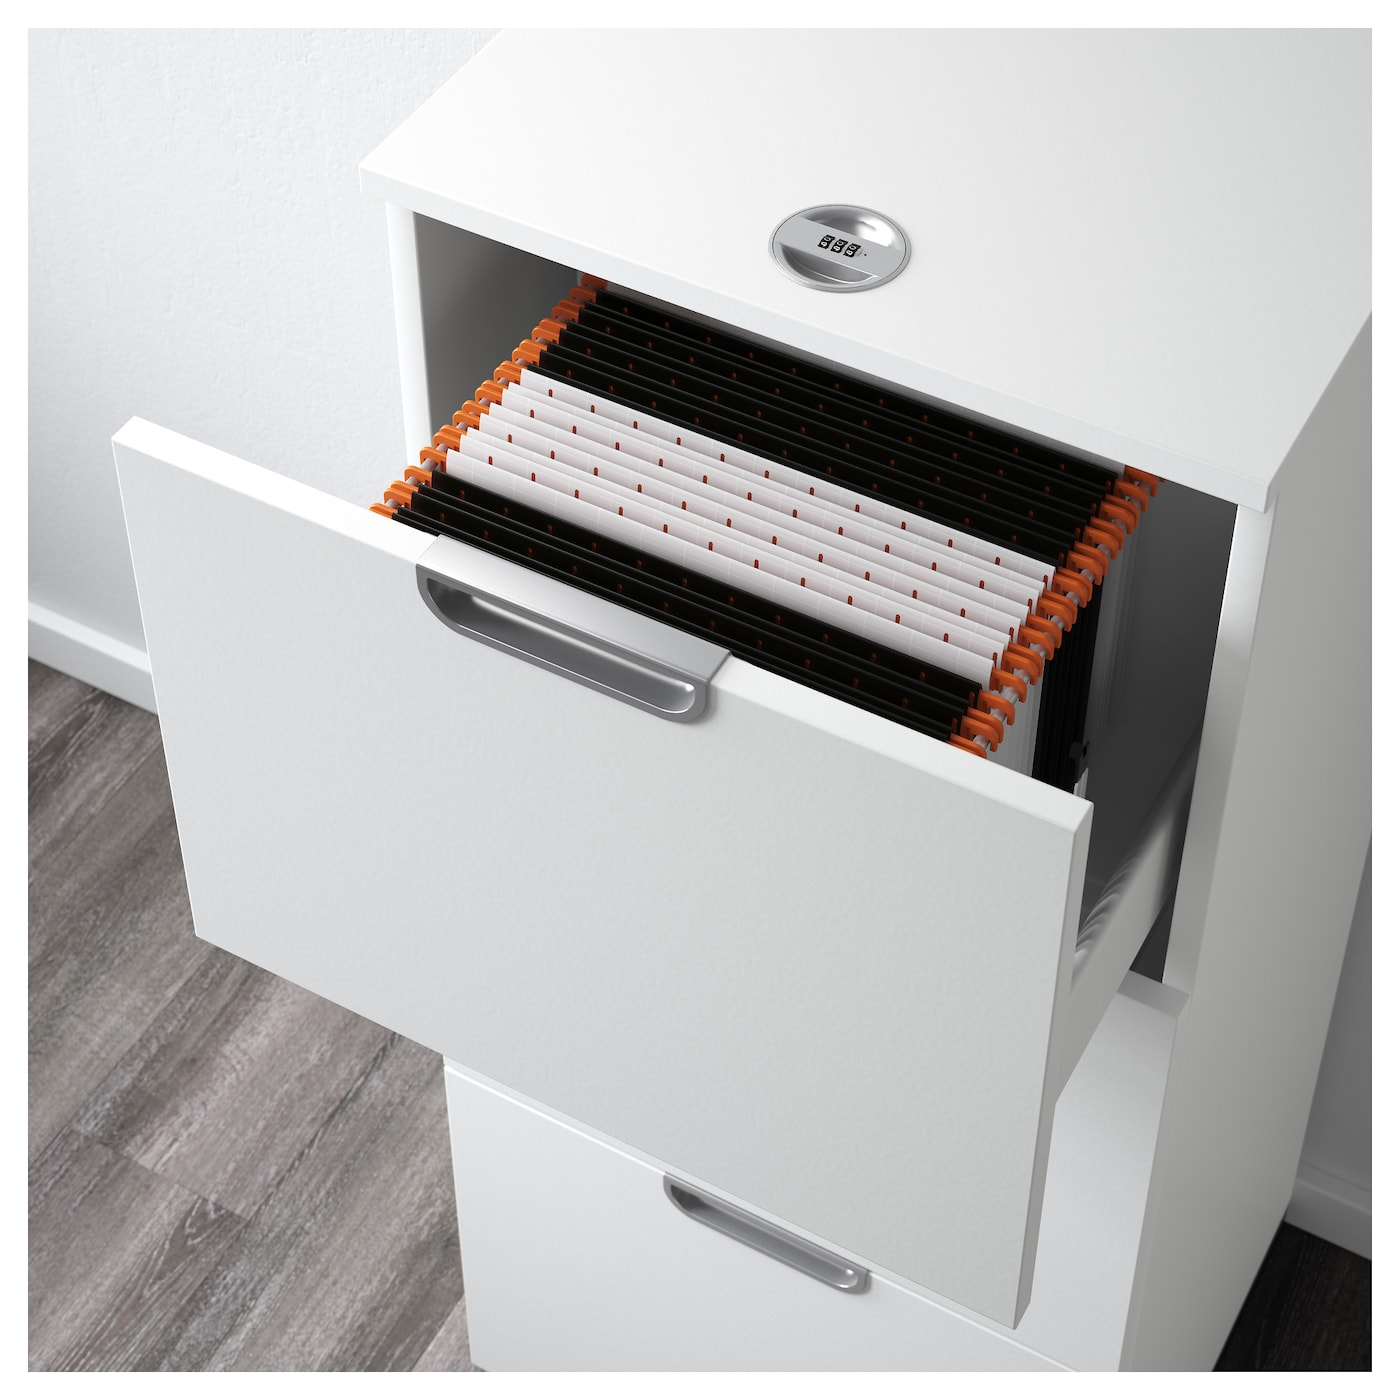 IKEA GALANT file cabinet 10 year guarantee. Read about the terms in the guarantee brochure.